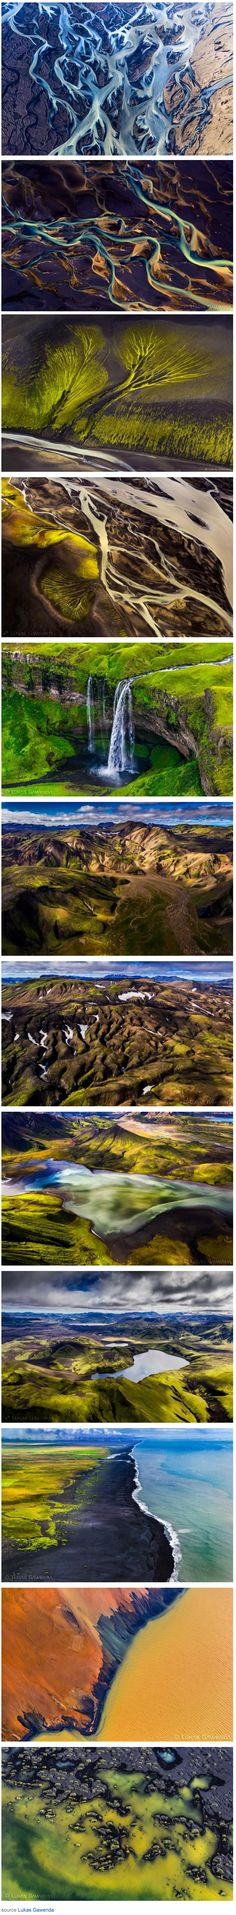 Iceland from Above -  capturing the beauty of Iceland from an aerial view created by photographer Lukas Gawenda.    Images © Lukas Gawenda